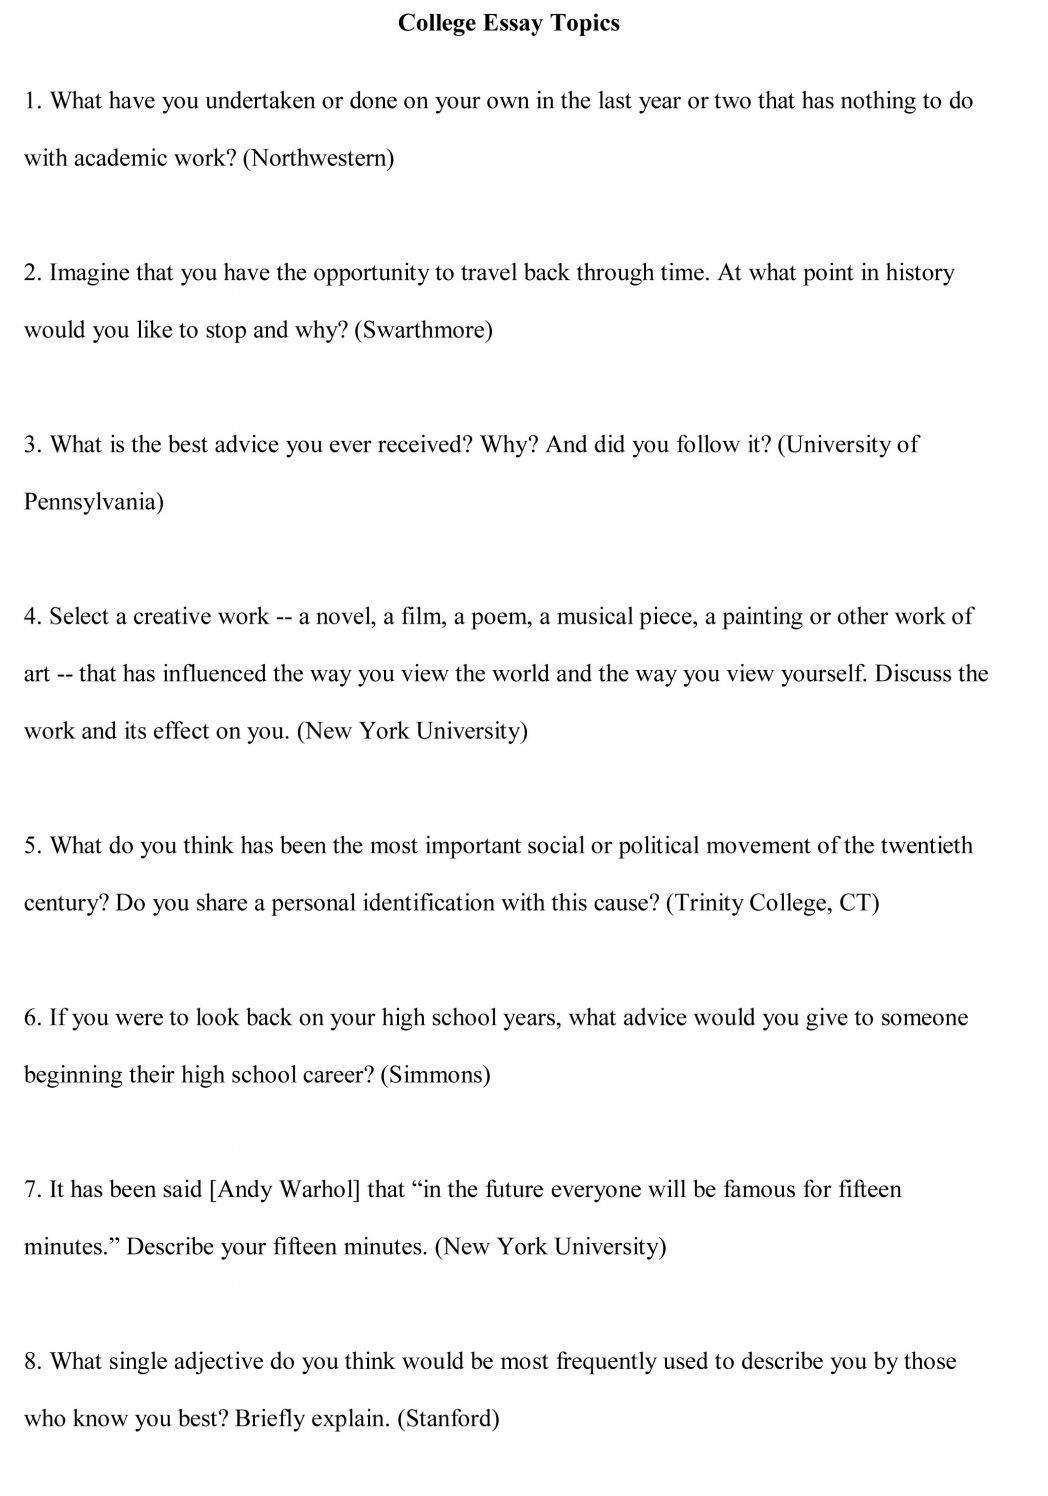 011 Cbest Essay Prompts Writing Exam California Basic Educational Tsi Prompt Examples College Topics Free Sa Example 1048x1496 Unique For Esl Students Argumentative Expository Full